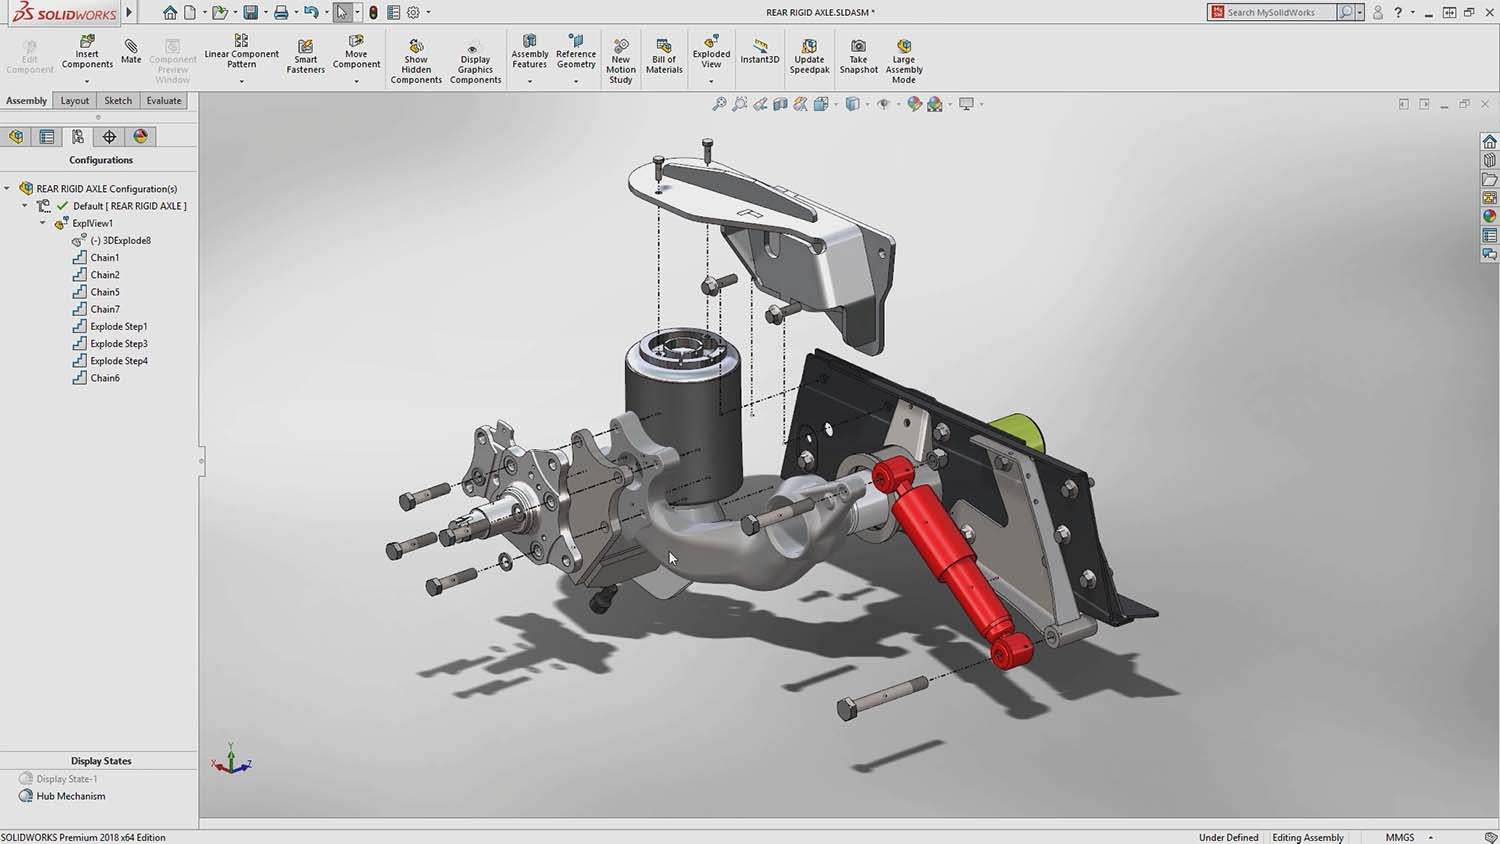 Solidworks 2022 exploded part